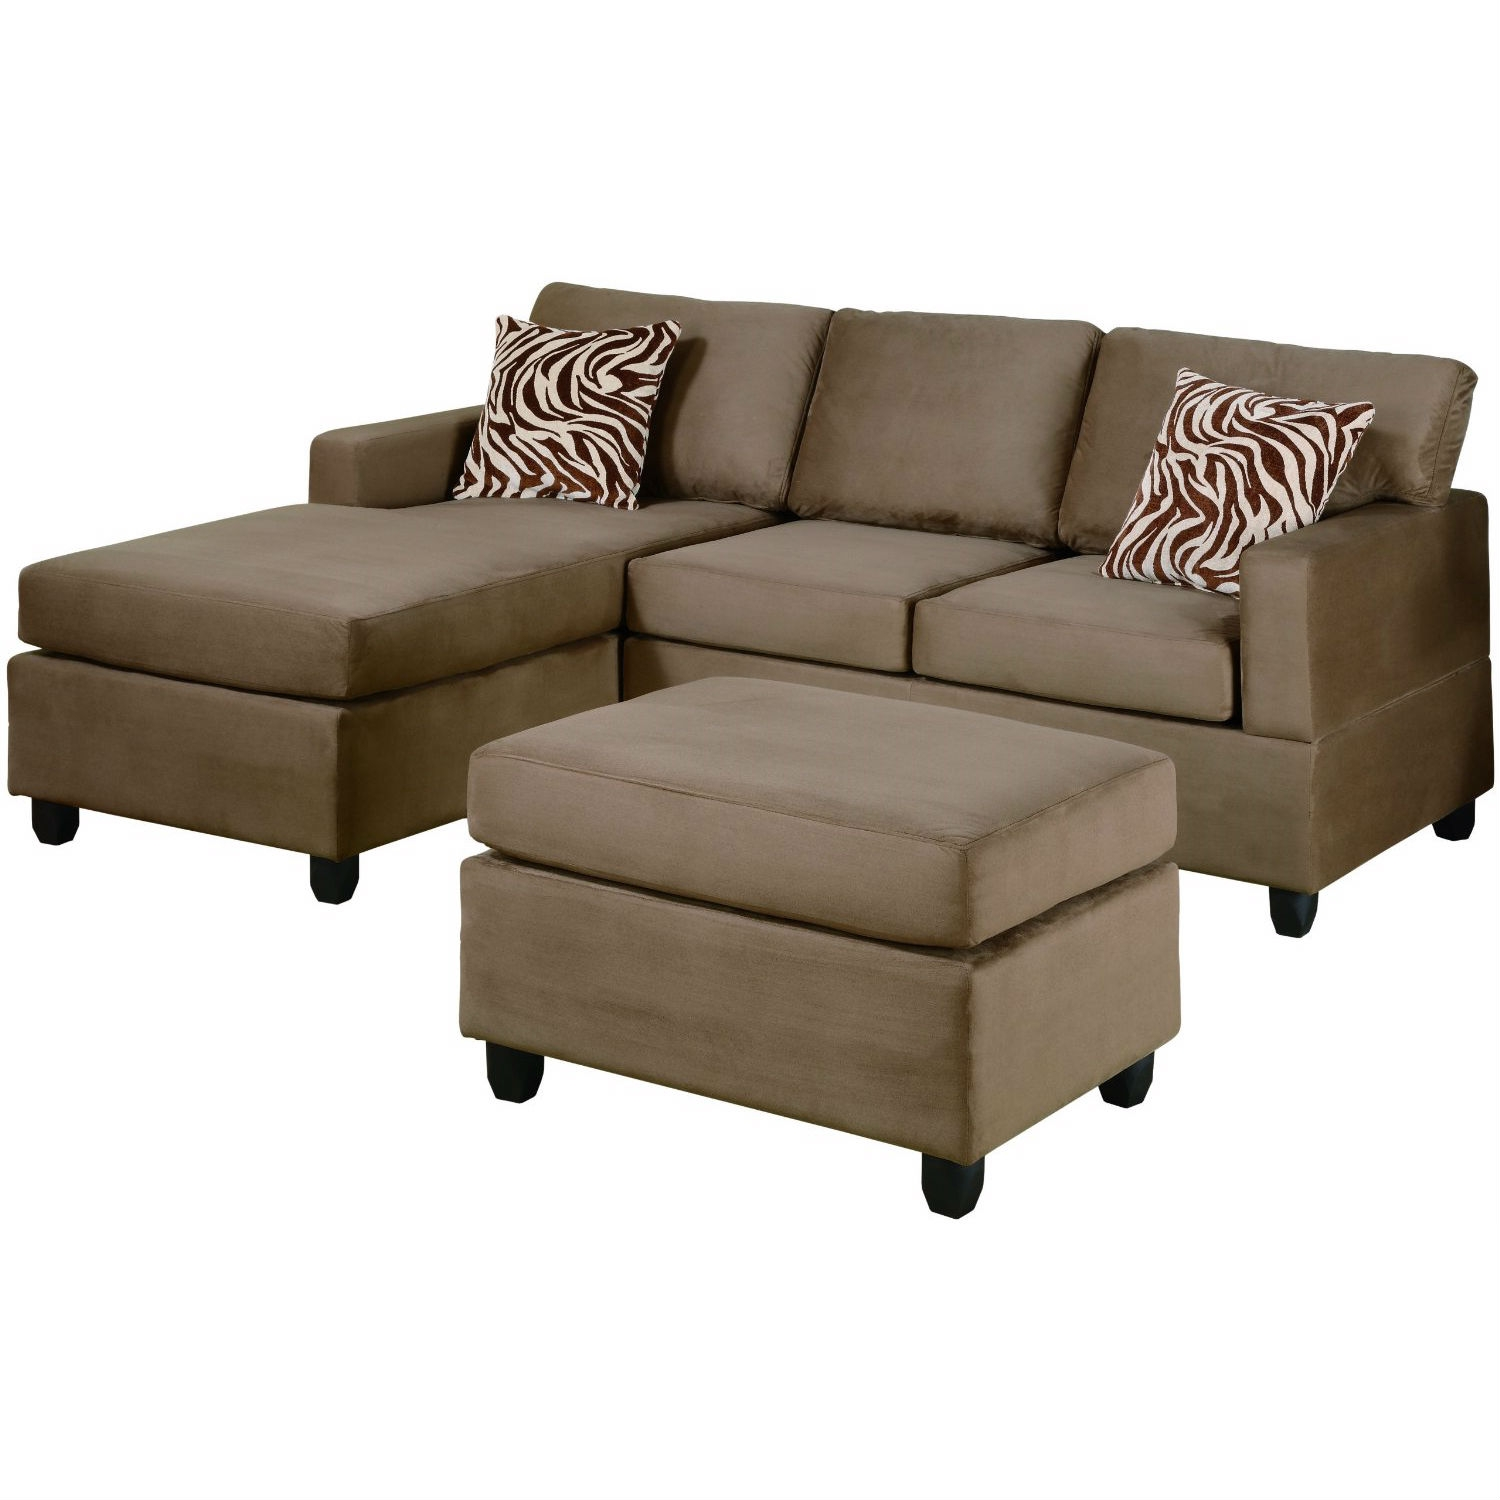 This Reversible 3-Piece Sectional Sofa Set in Saddle Color Microfiber is available in a multitude of colors in a smooth microfiber. Its versatility and style is great for den and standard living room spaces. Accented with brown and white zebra print pillow, This collection also features a classic plush cocktail ottoman. Enjoy the experience of modern decor with a practical and functional composition. Available in Chocolate (F7661), Saddle (F7662), Mushroom (F7664) Red (F7668), Pepple w/ PU (F7669) and Sage w/ PU (F7670).